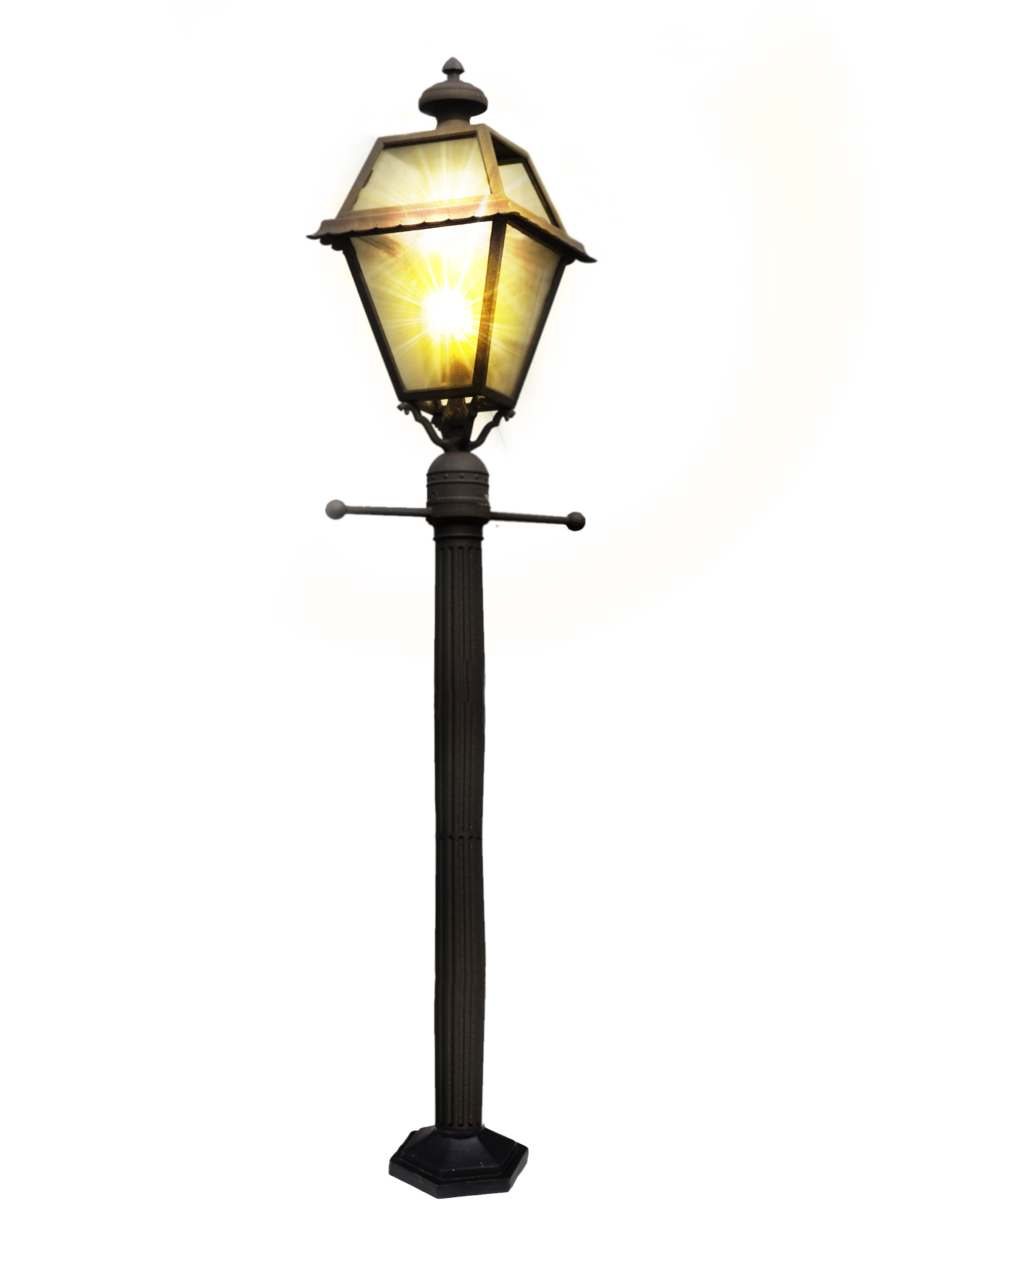 victorian clipart street light pencil and color #20856